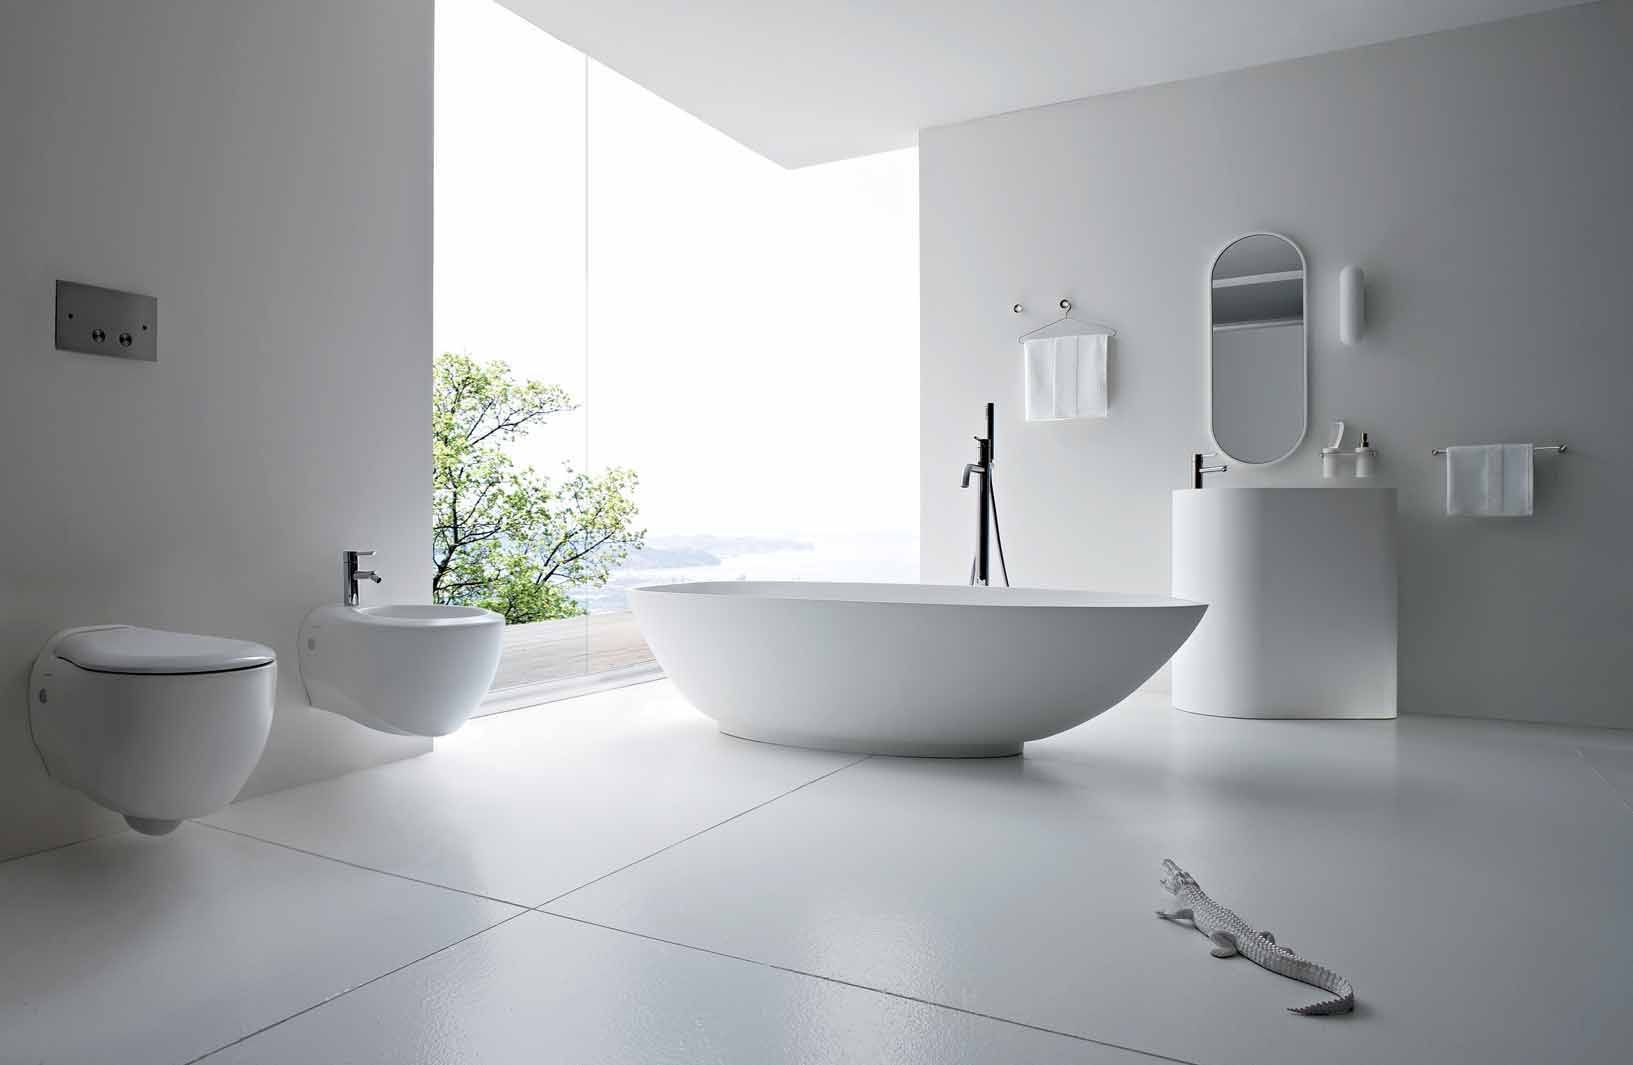 Luxurious White Marble Bathroom Decorating Ideas Beautiful Modern White Bathroom Design Ideas Acrylic Freestanding Oval Bathtub Wall Mounted Toilet Bidet Unit Curve Edge Triangular Shape Pedestal Sink Shaped Framed Mirror